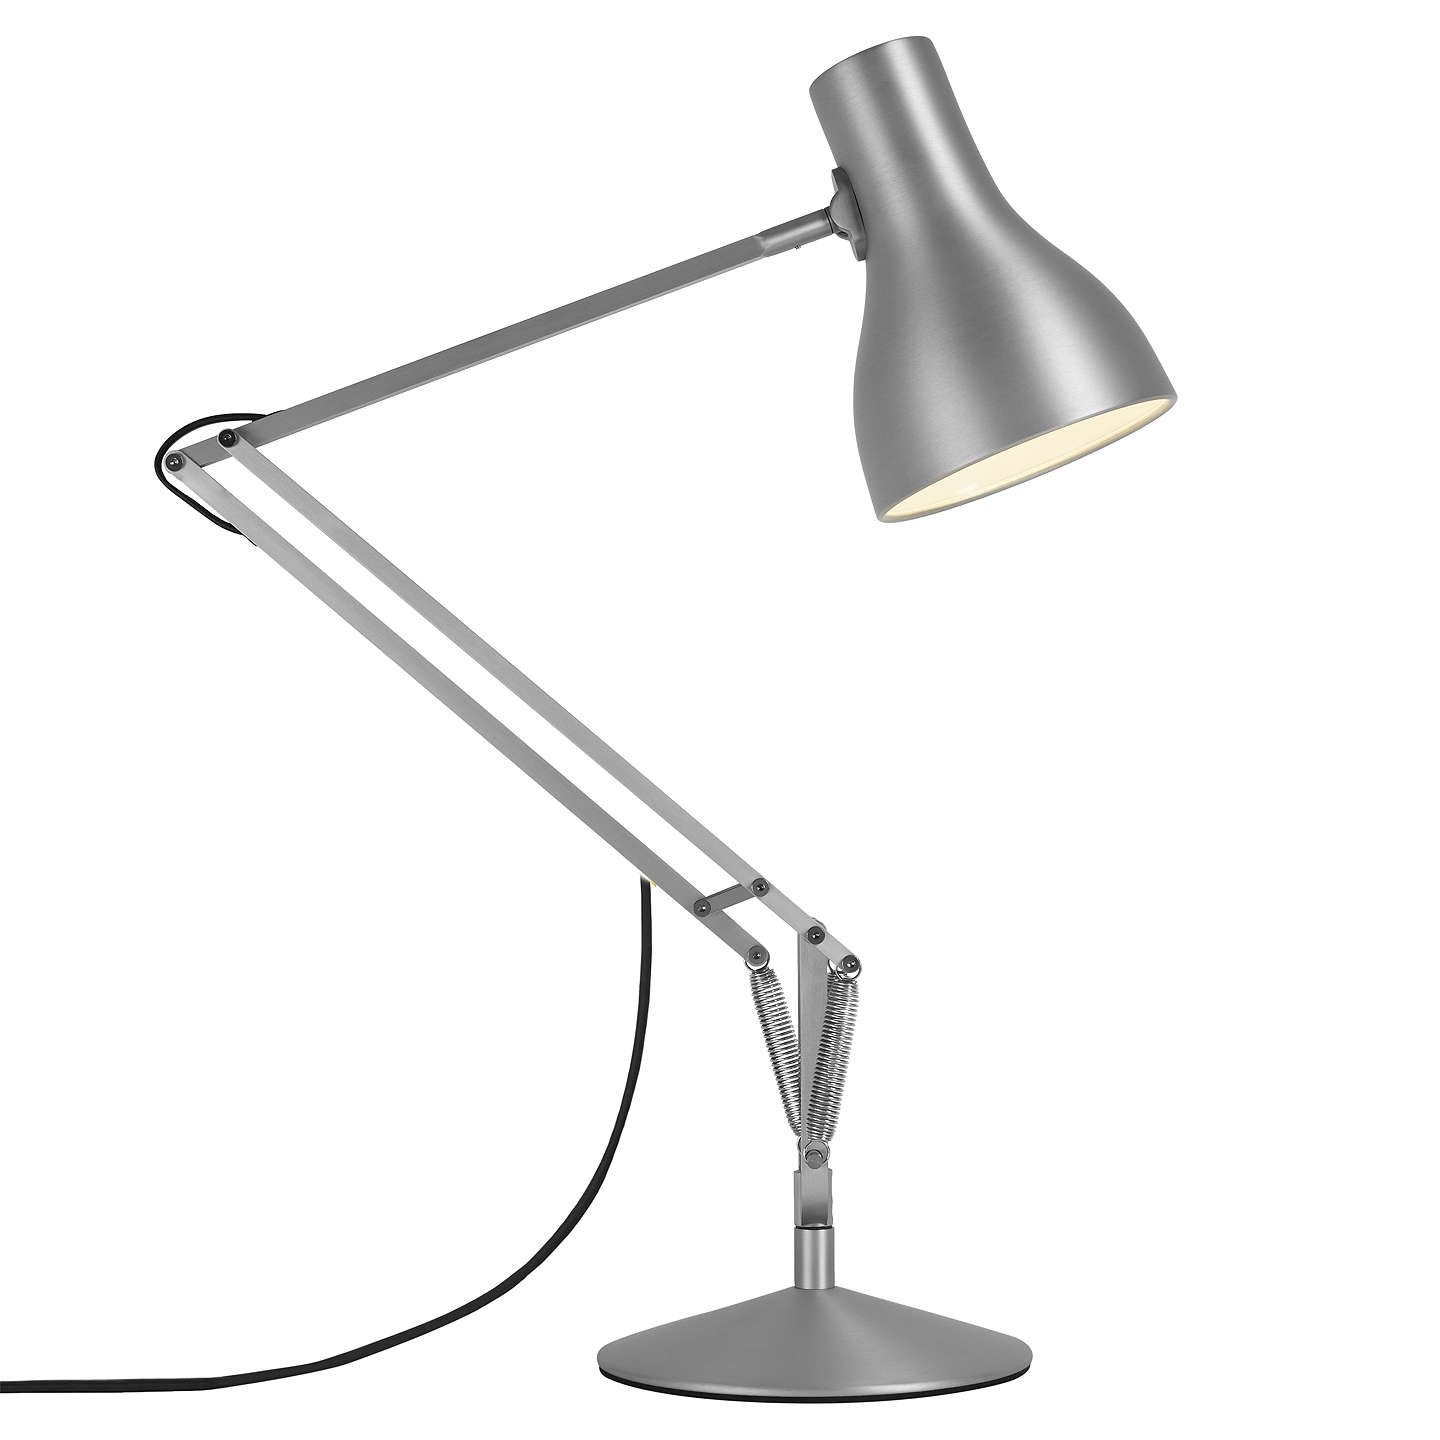 BuyAnglepoise Type 75 Desk Lamp, Brushed Aluminium Online at johnlewis.com